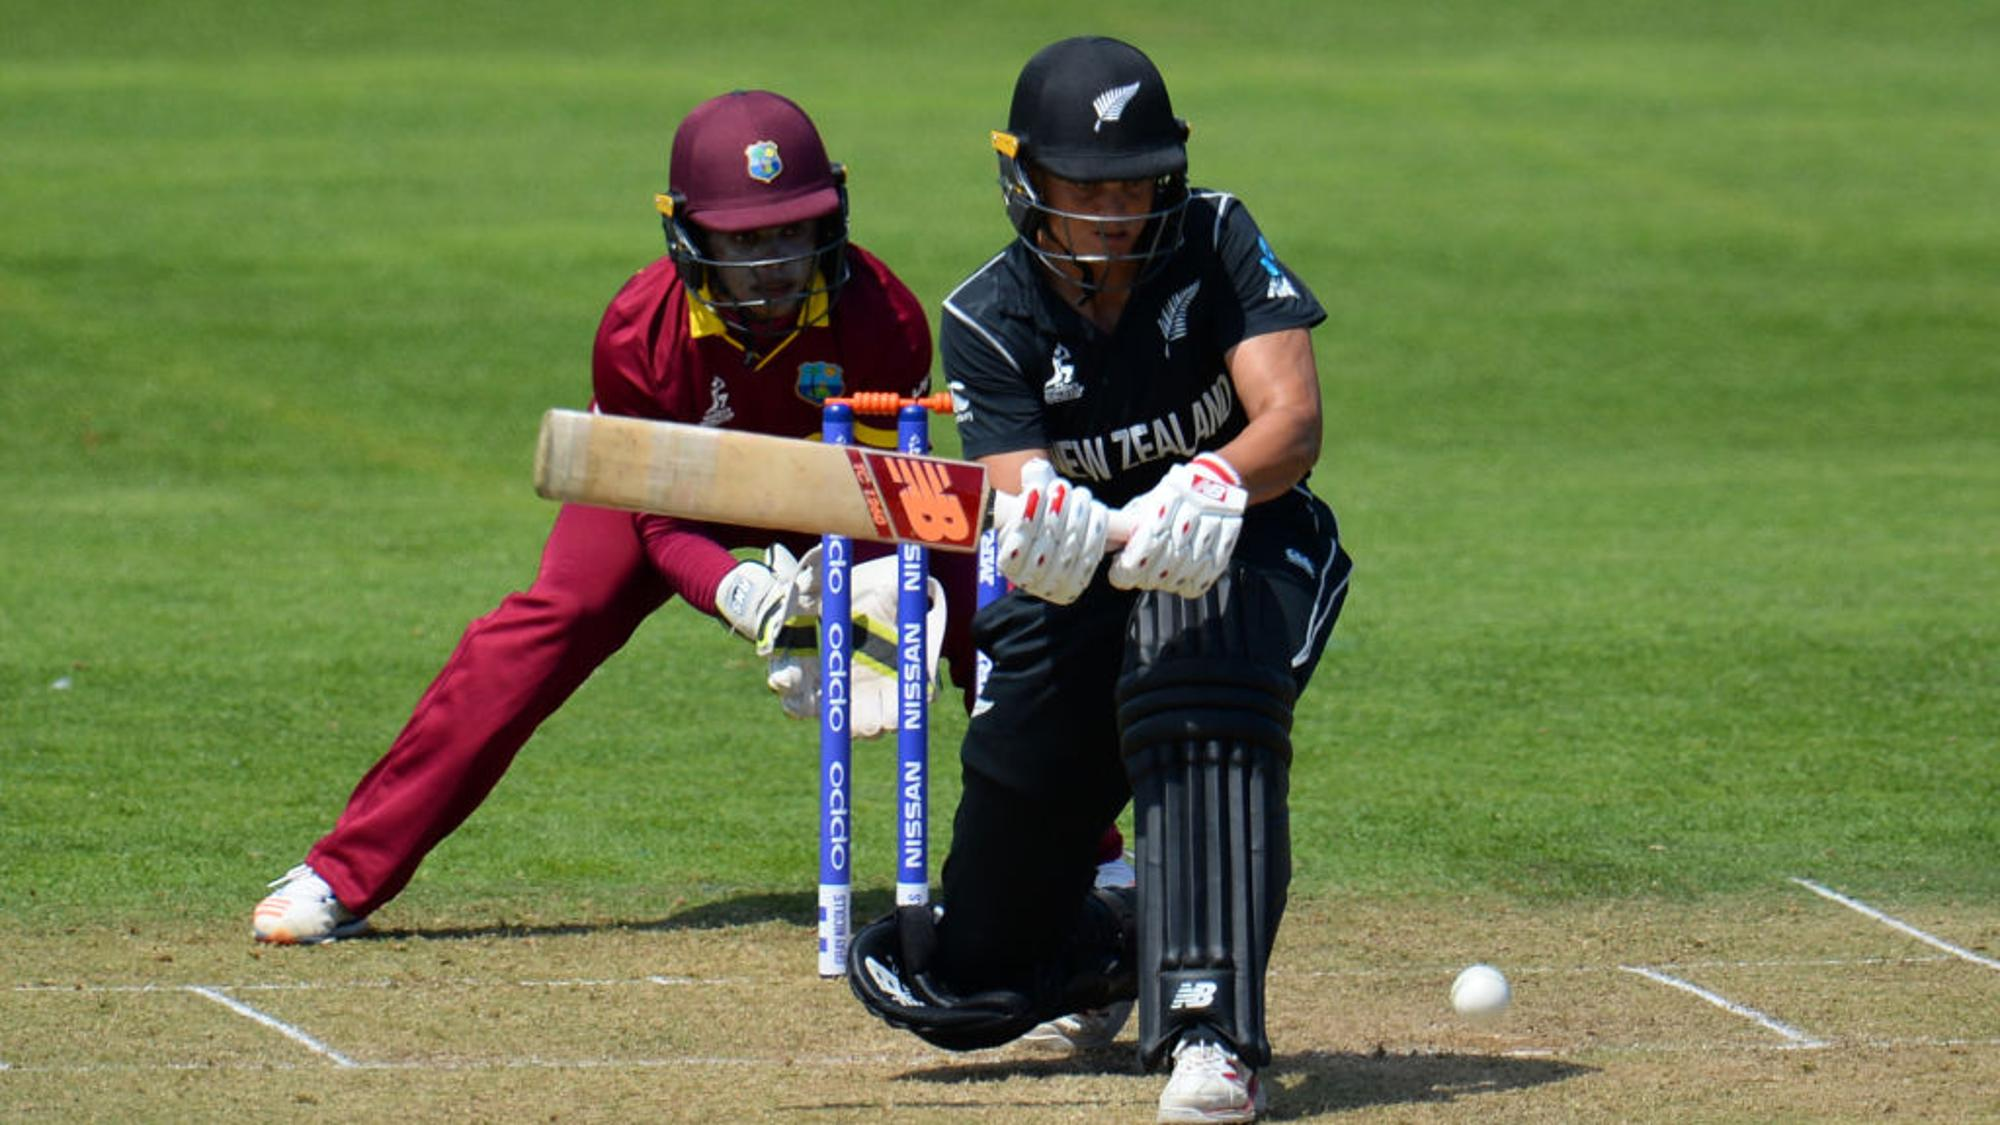 ICC Women's World Cup Match 16 - New Zealand v West Indies